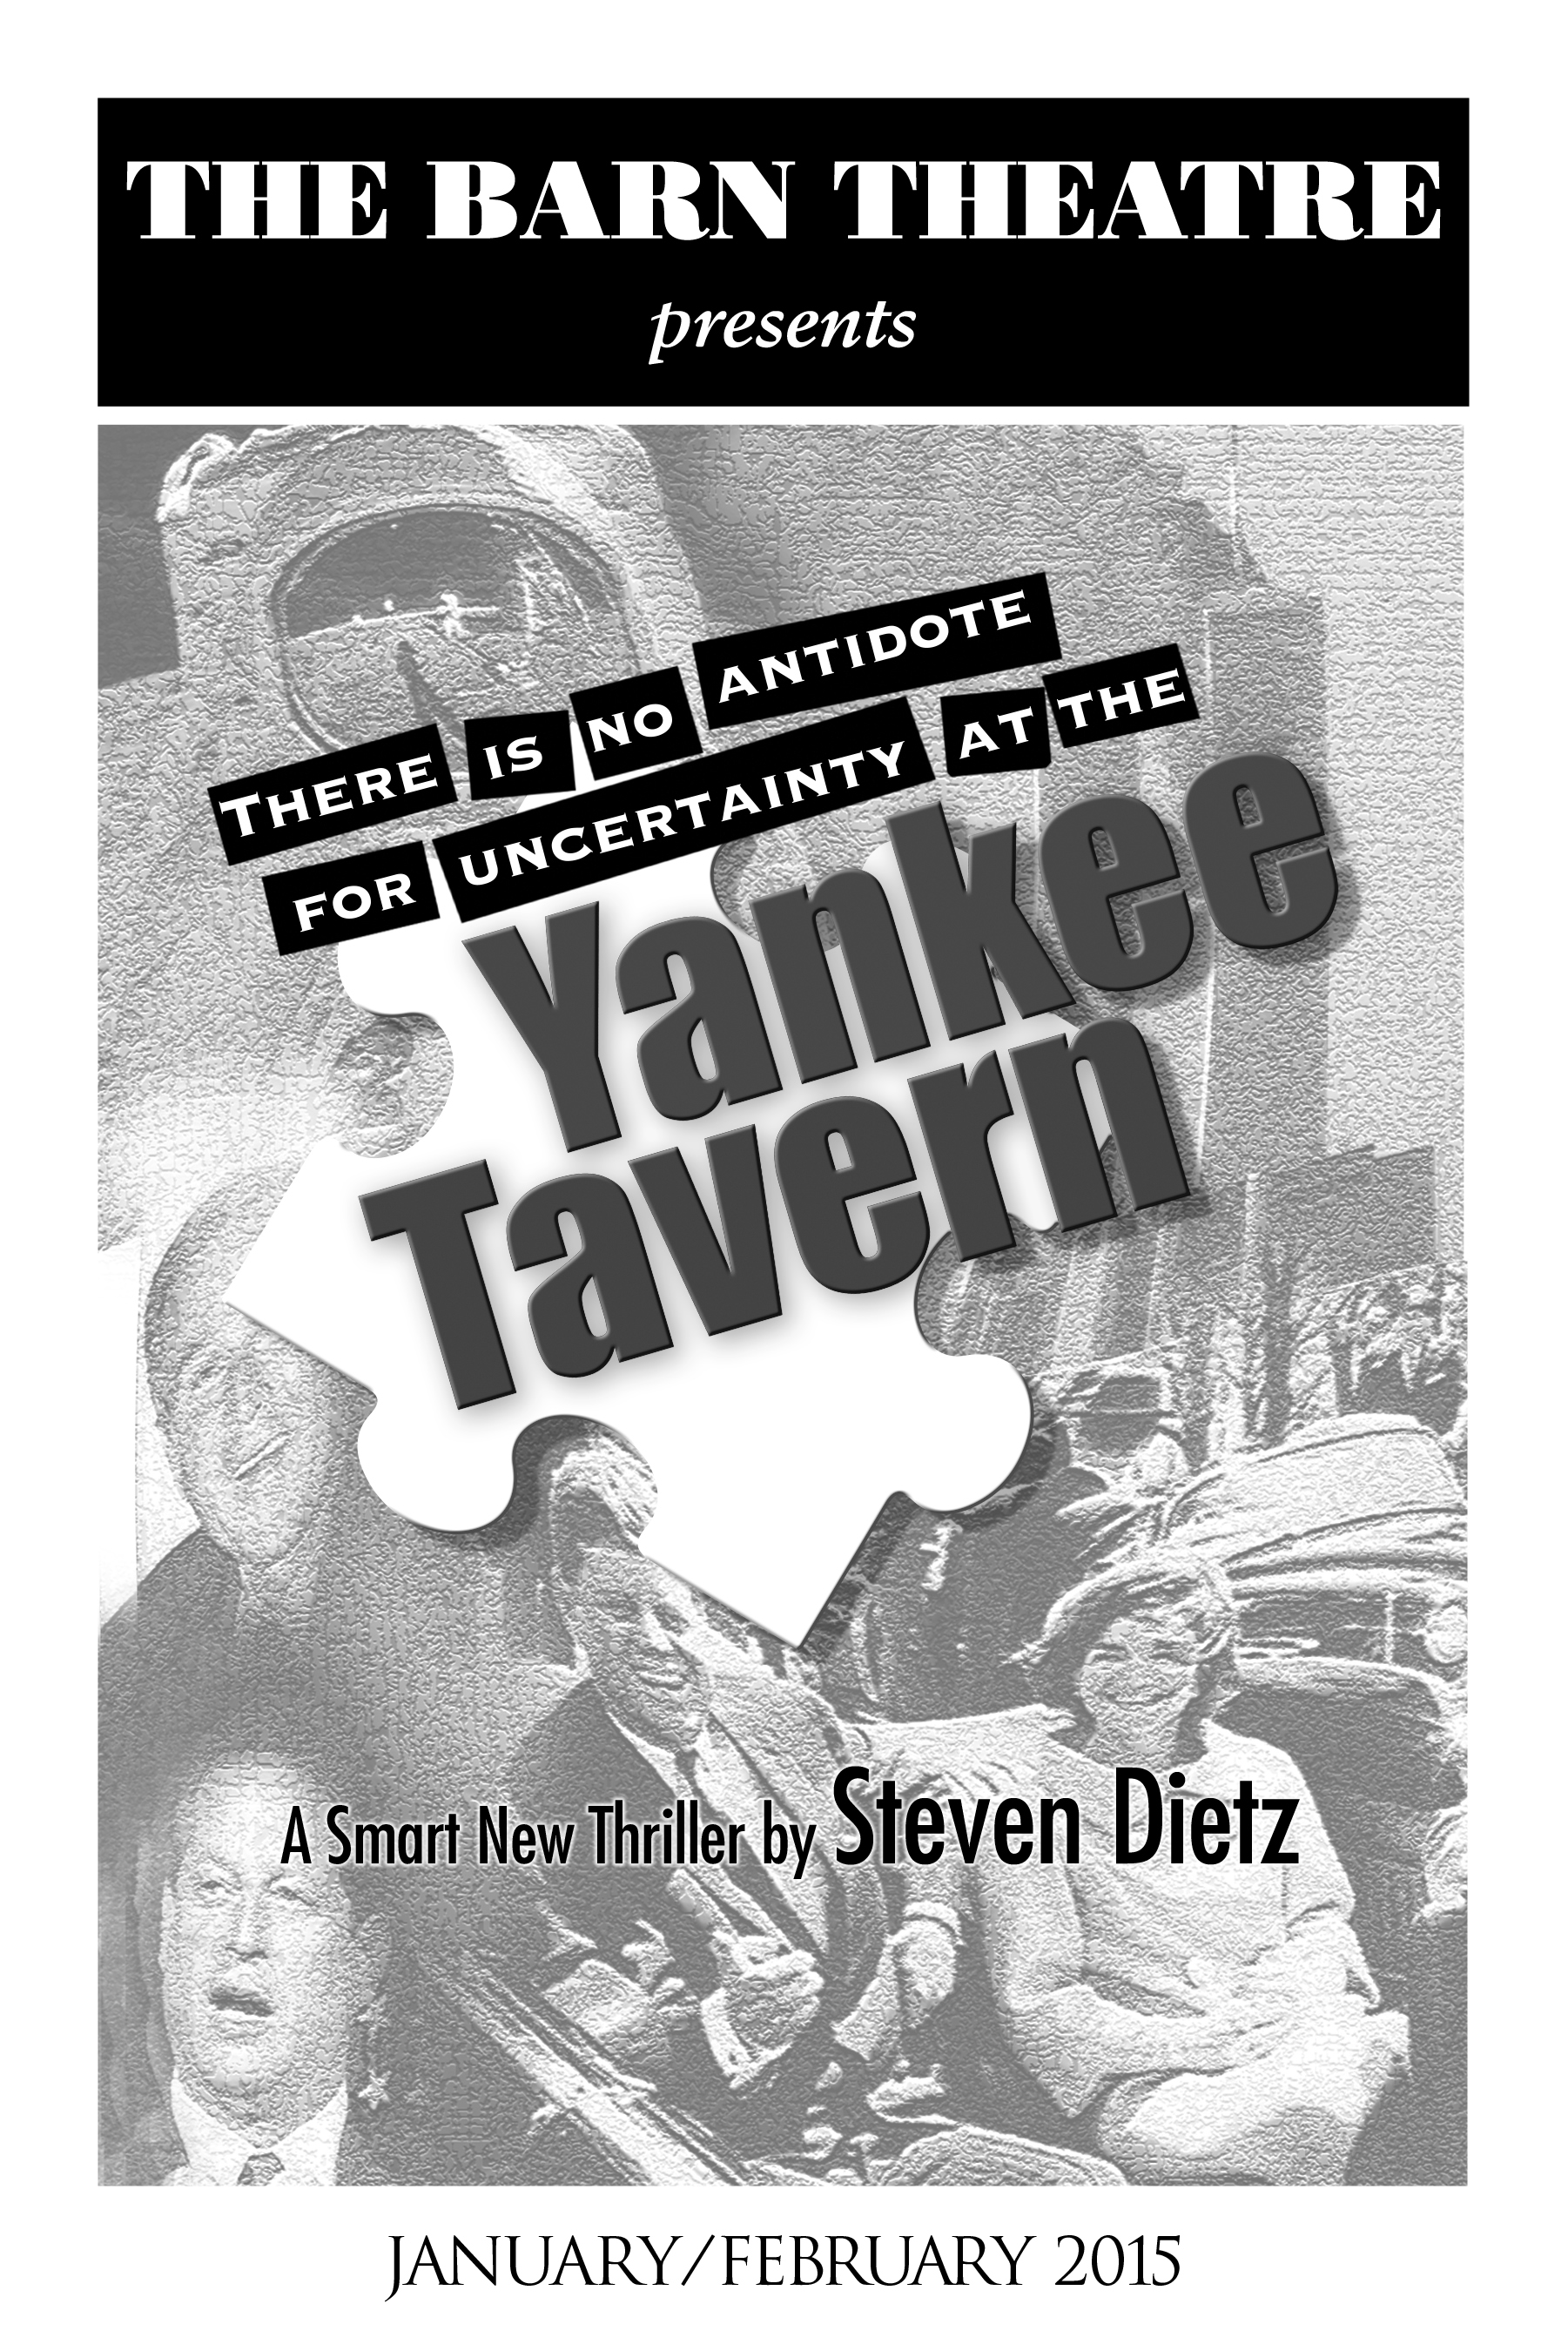 Program Cover for Yankee Tavern